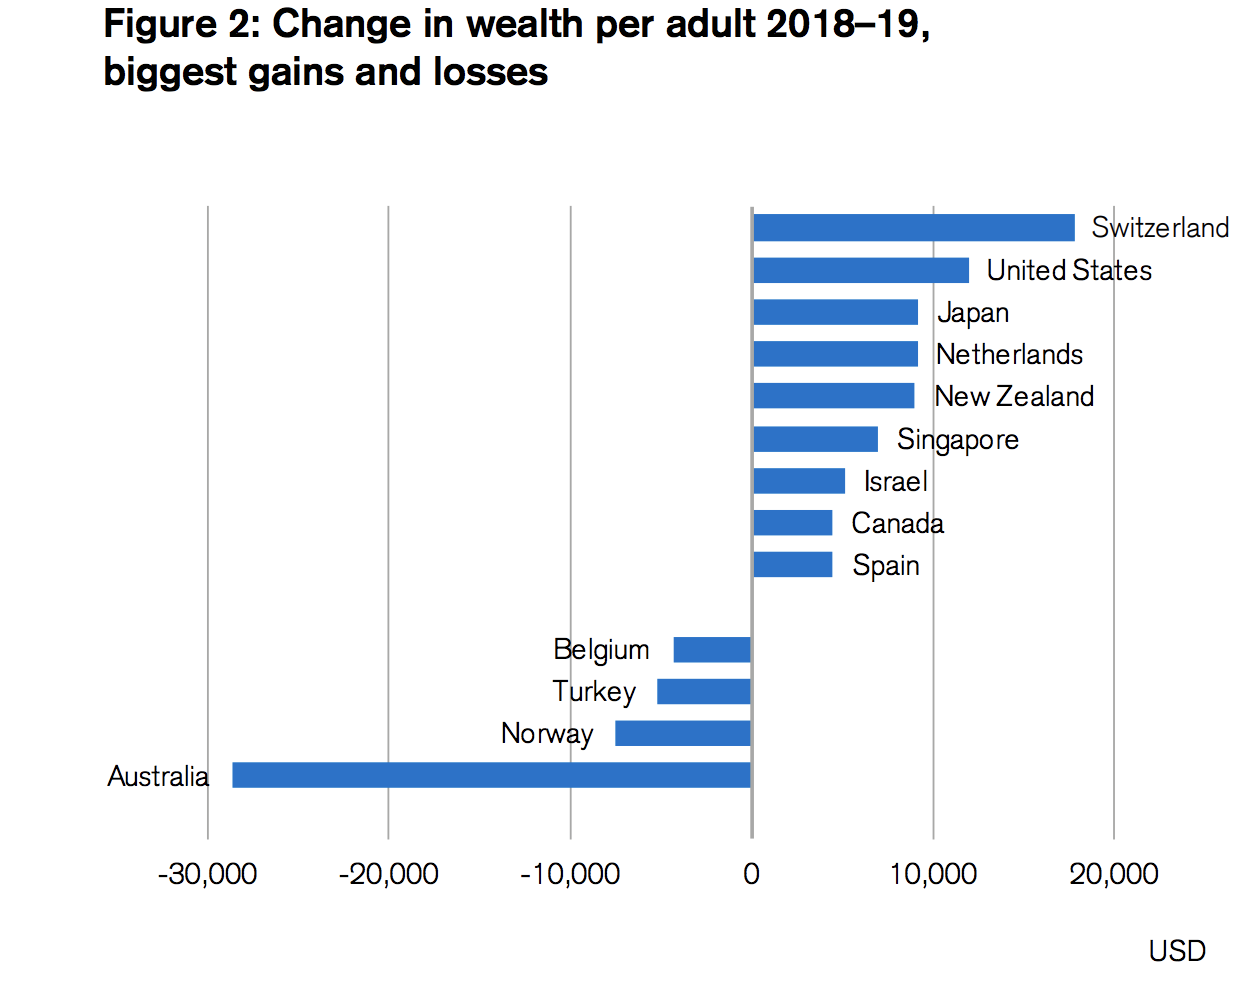 Source Figures 2 and 3: James Davies, Rodrigo Lluberas and Anthony Shorrocks, Global wealth databook 2019